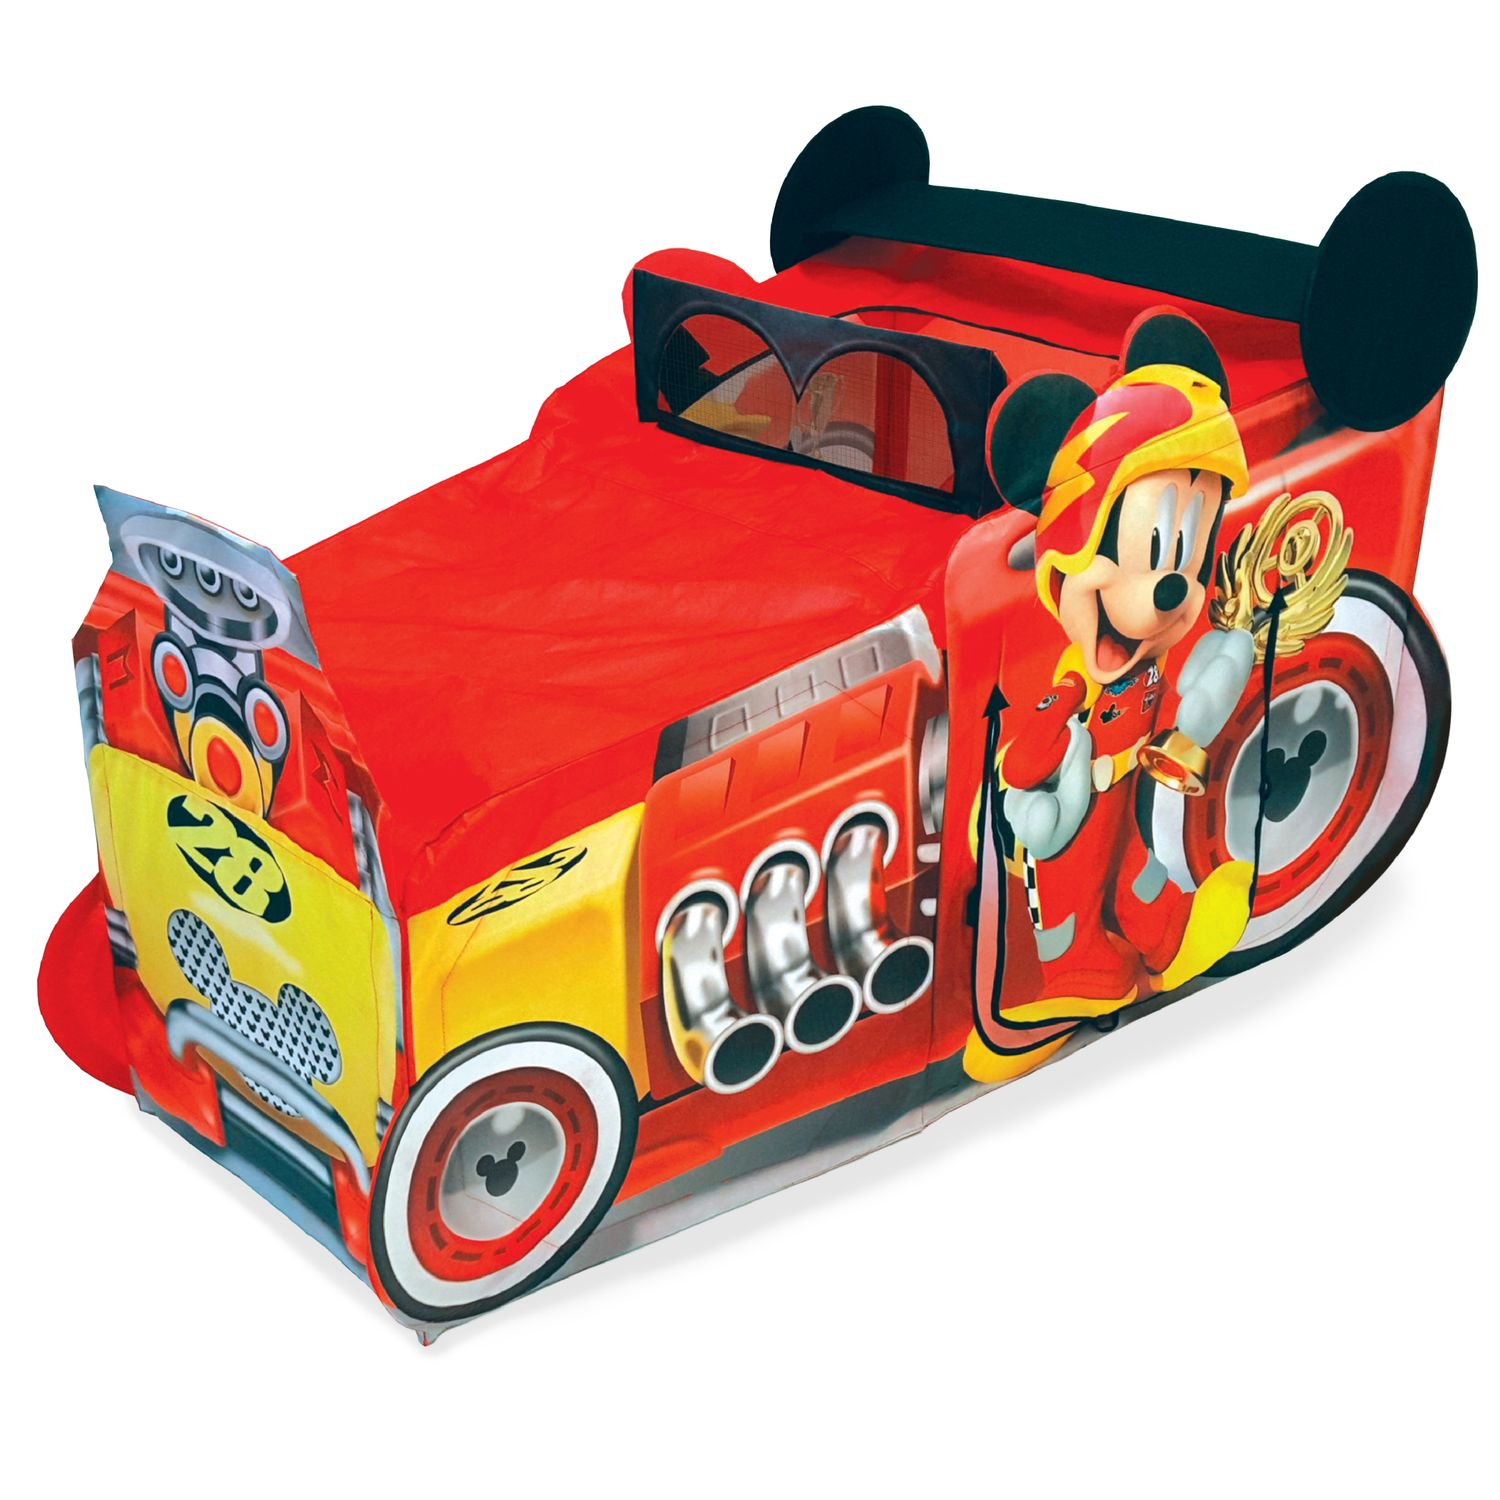 Disneyu0027s Mickey u0026 The Roadster Racers Vehicle Play Tent by Playhut  sc 1 st  Kohlu0027s : mickey play tent - memphite.com